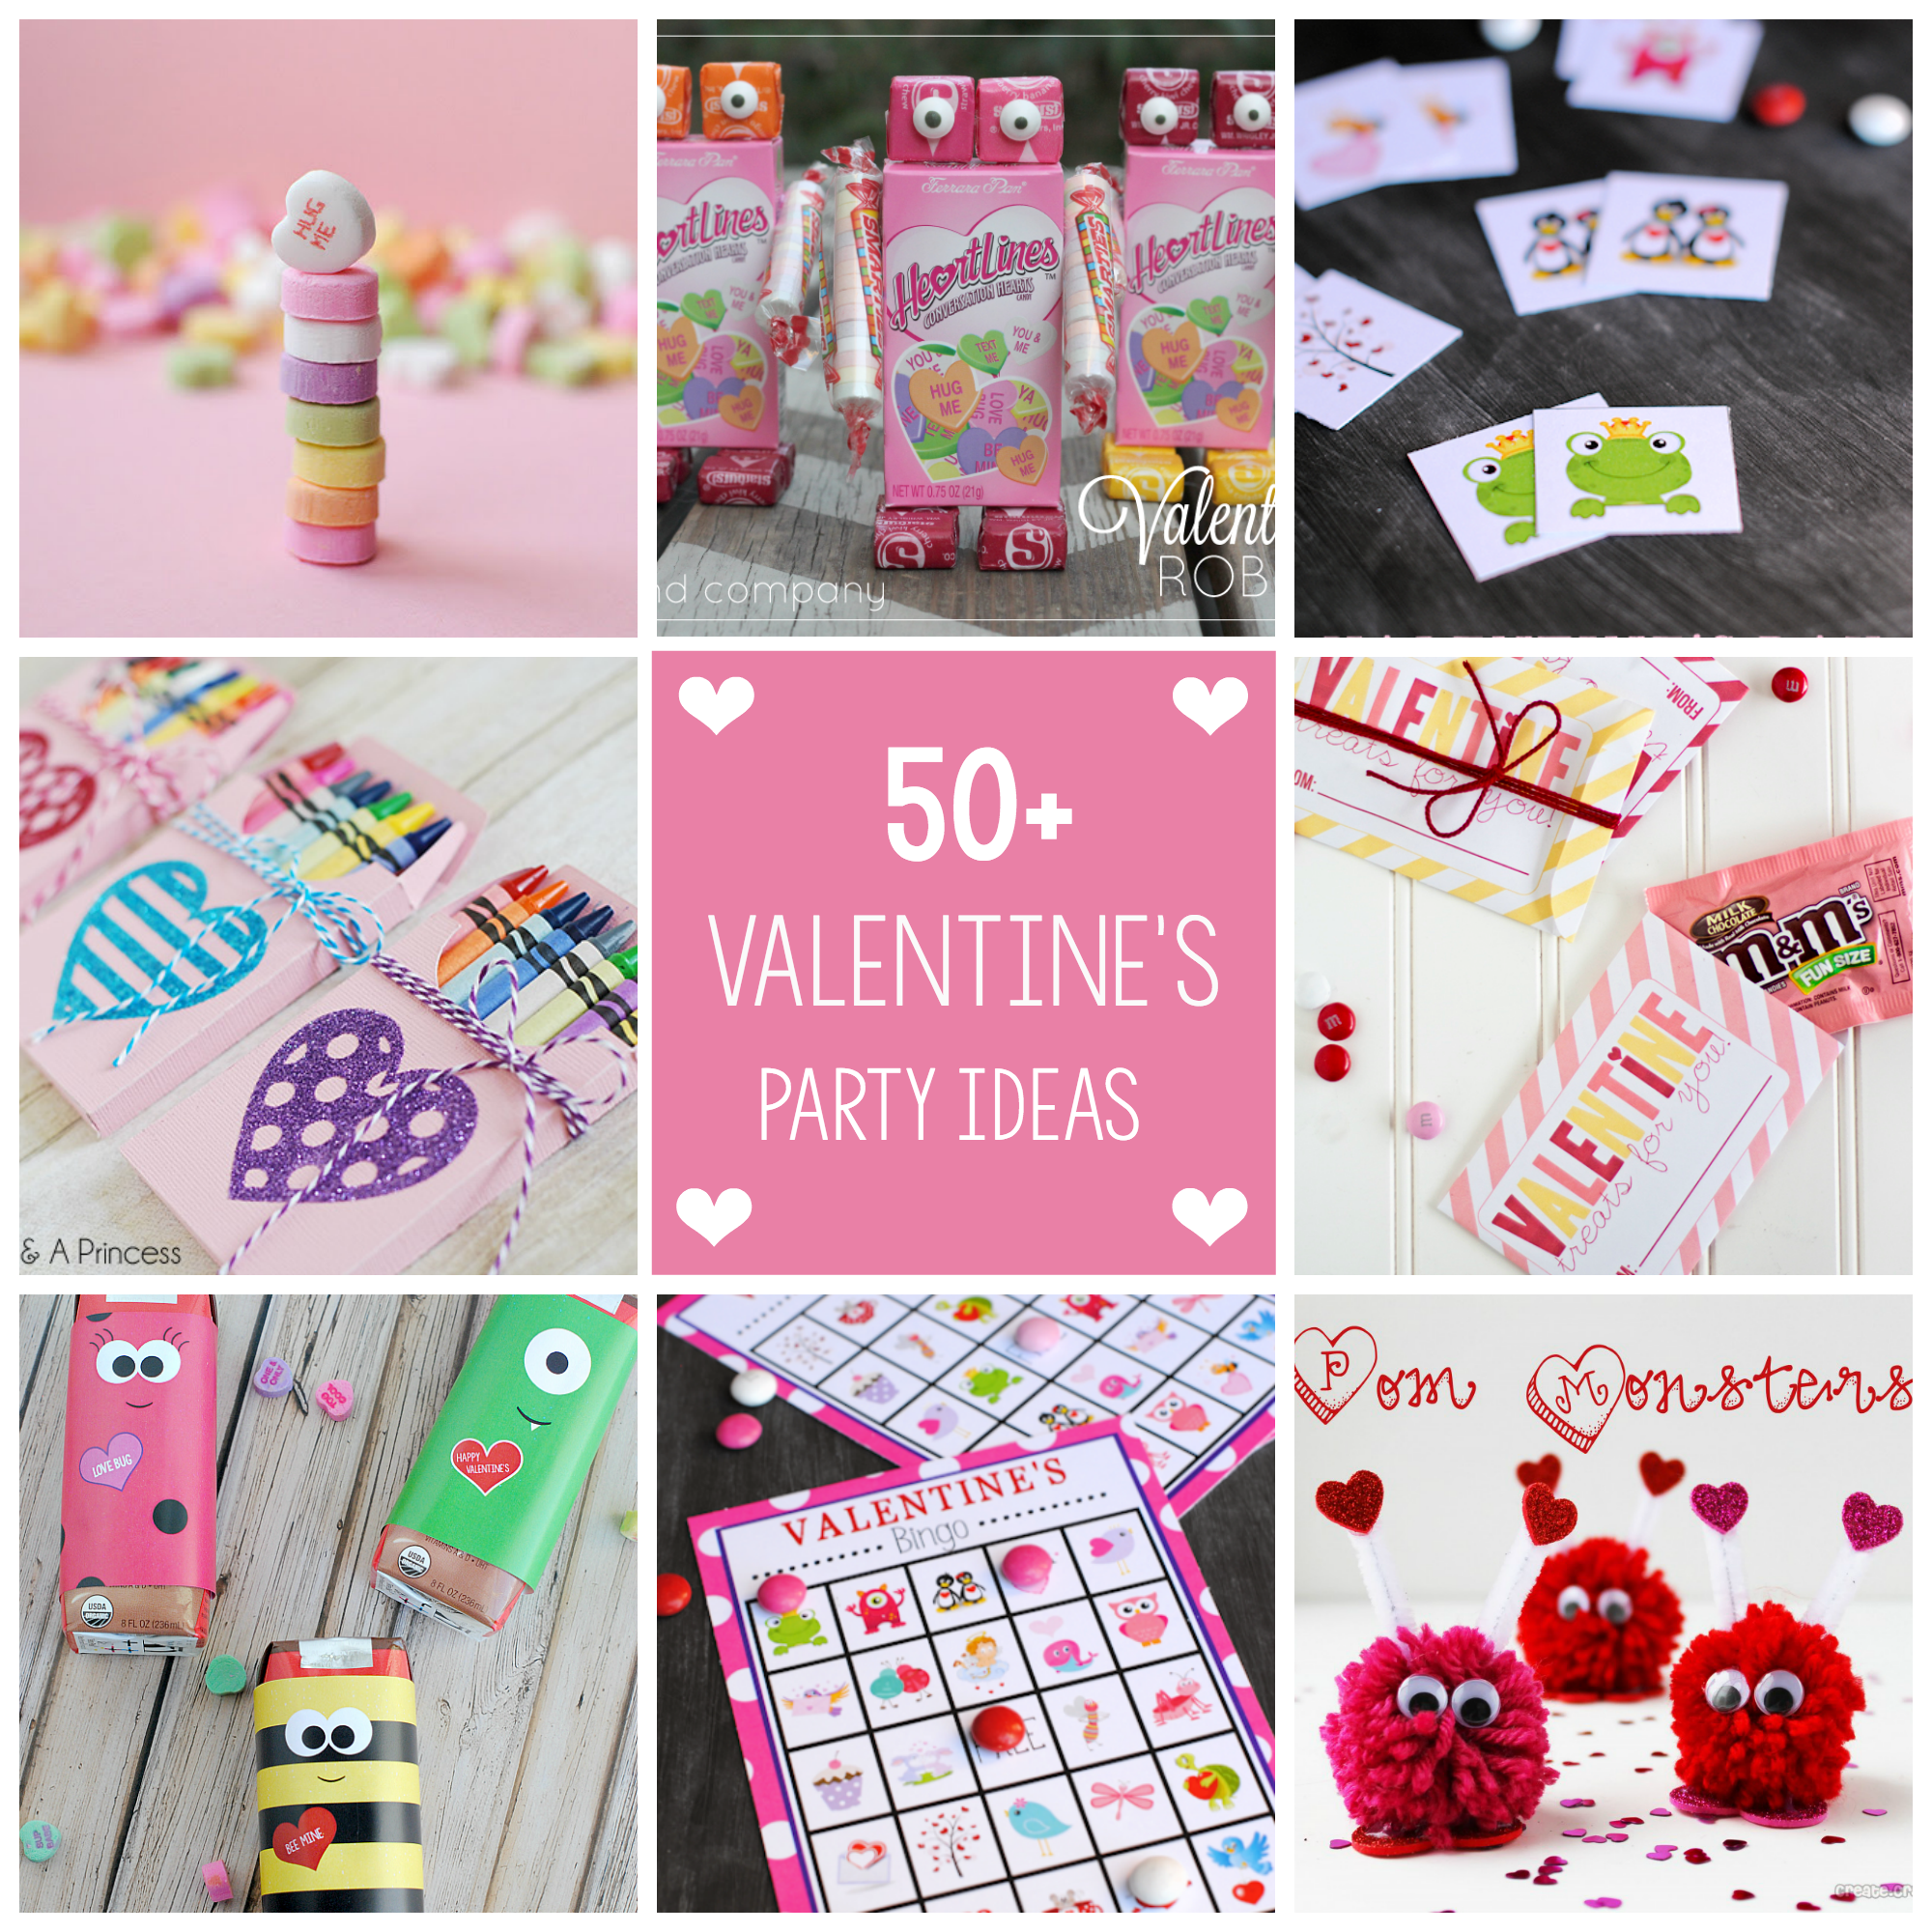 50 Fun Valentine's Day Party Ideas-Treats-Crafts, Games